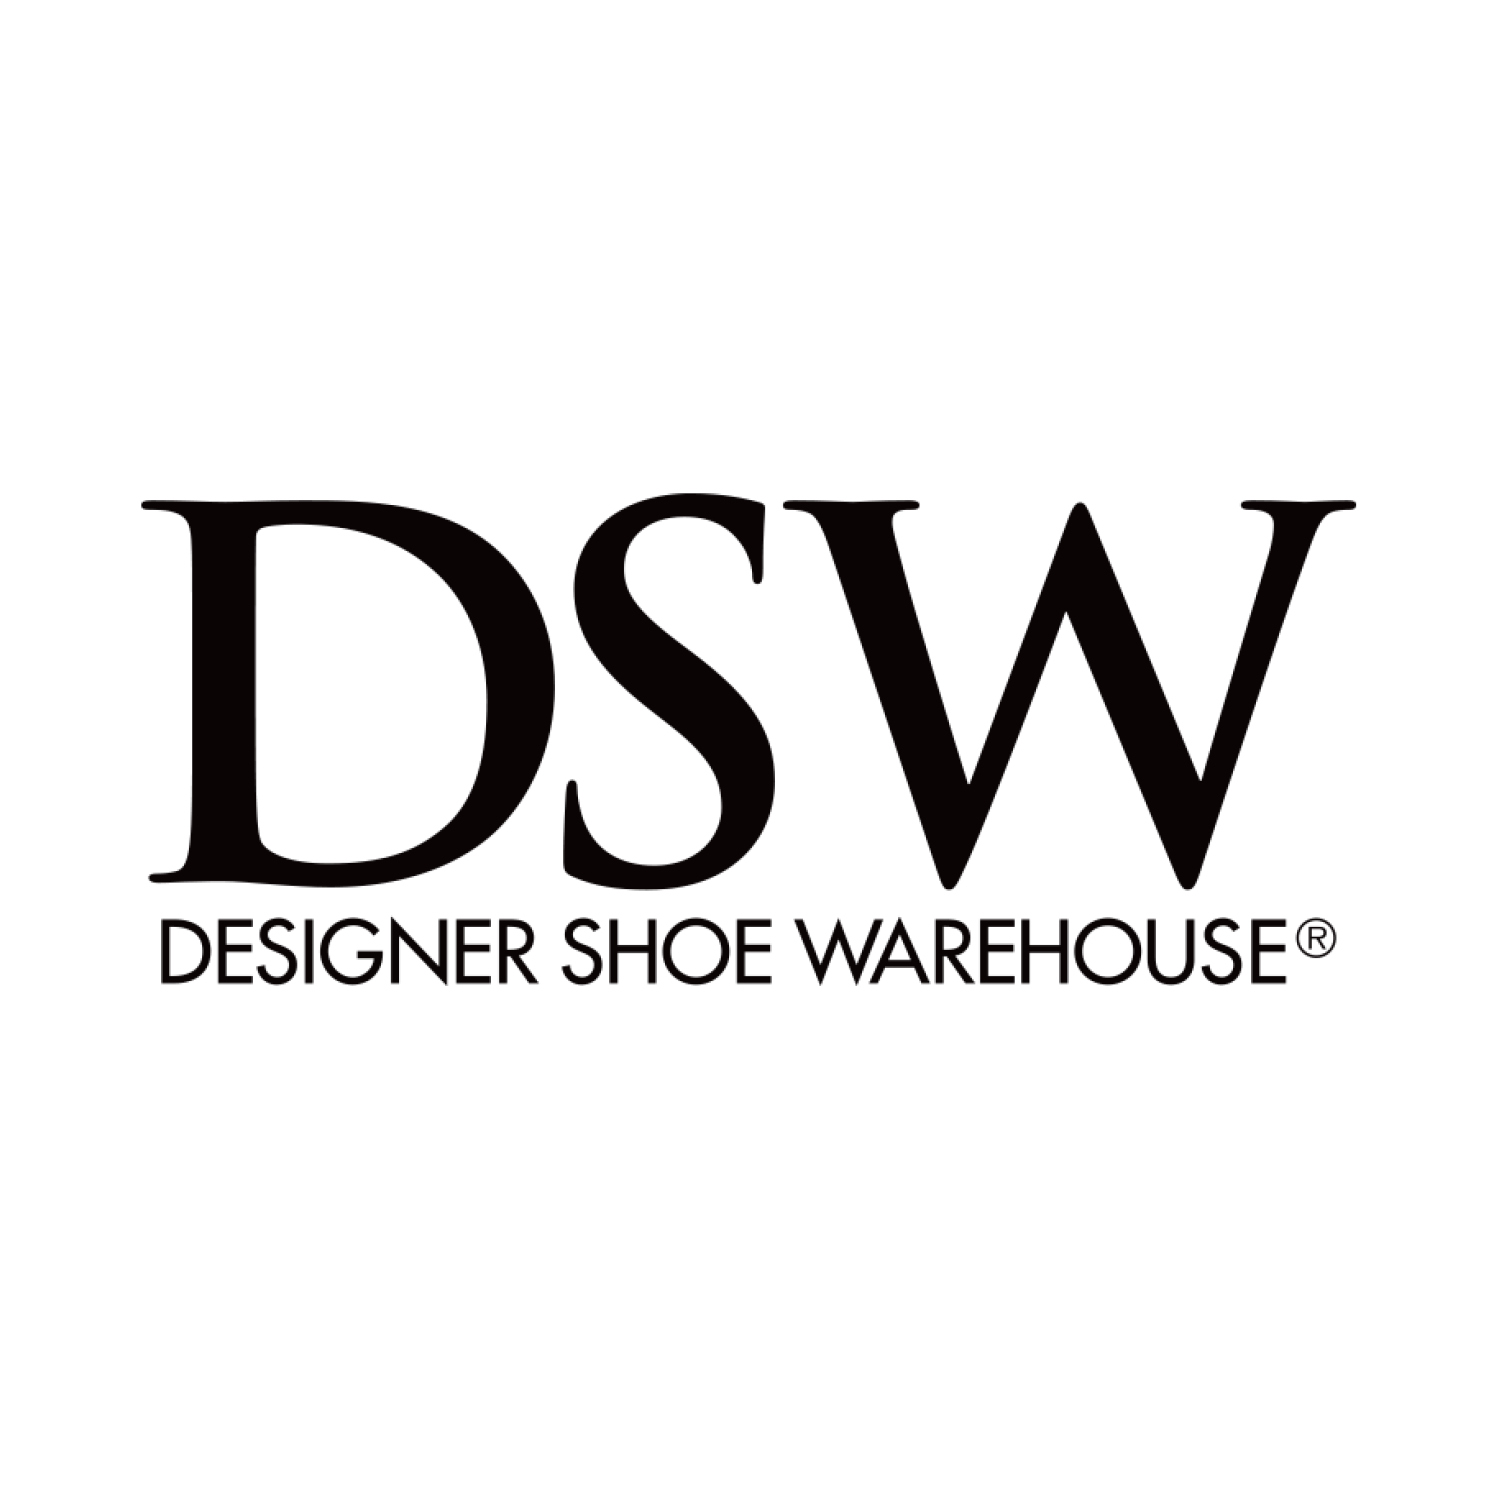 DSW Menu Sign - Price Points: $9.99 - FR